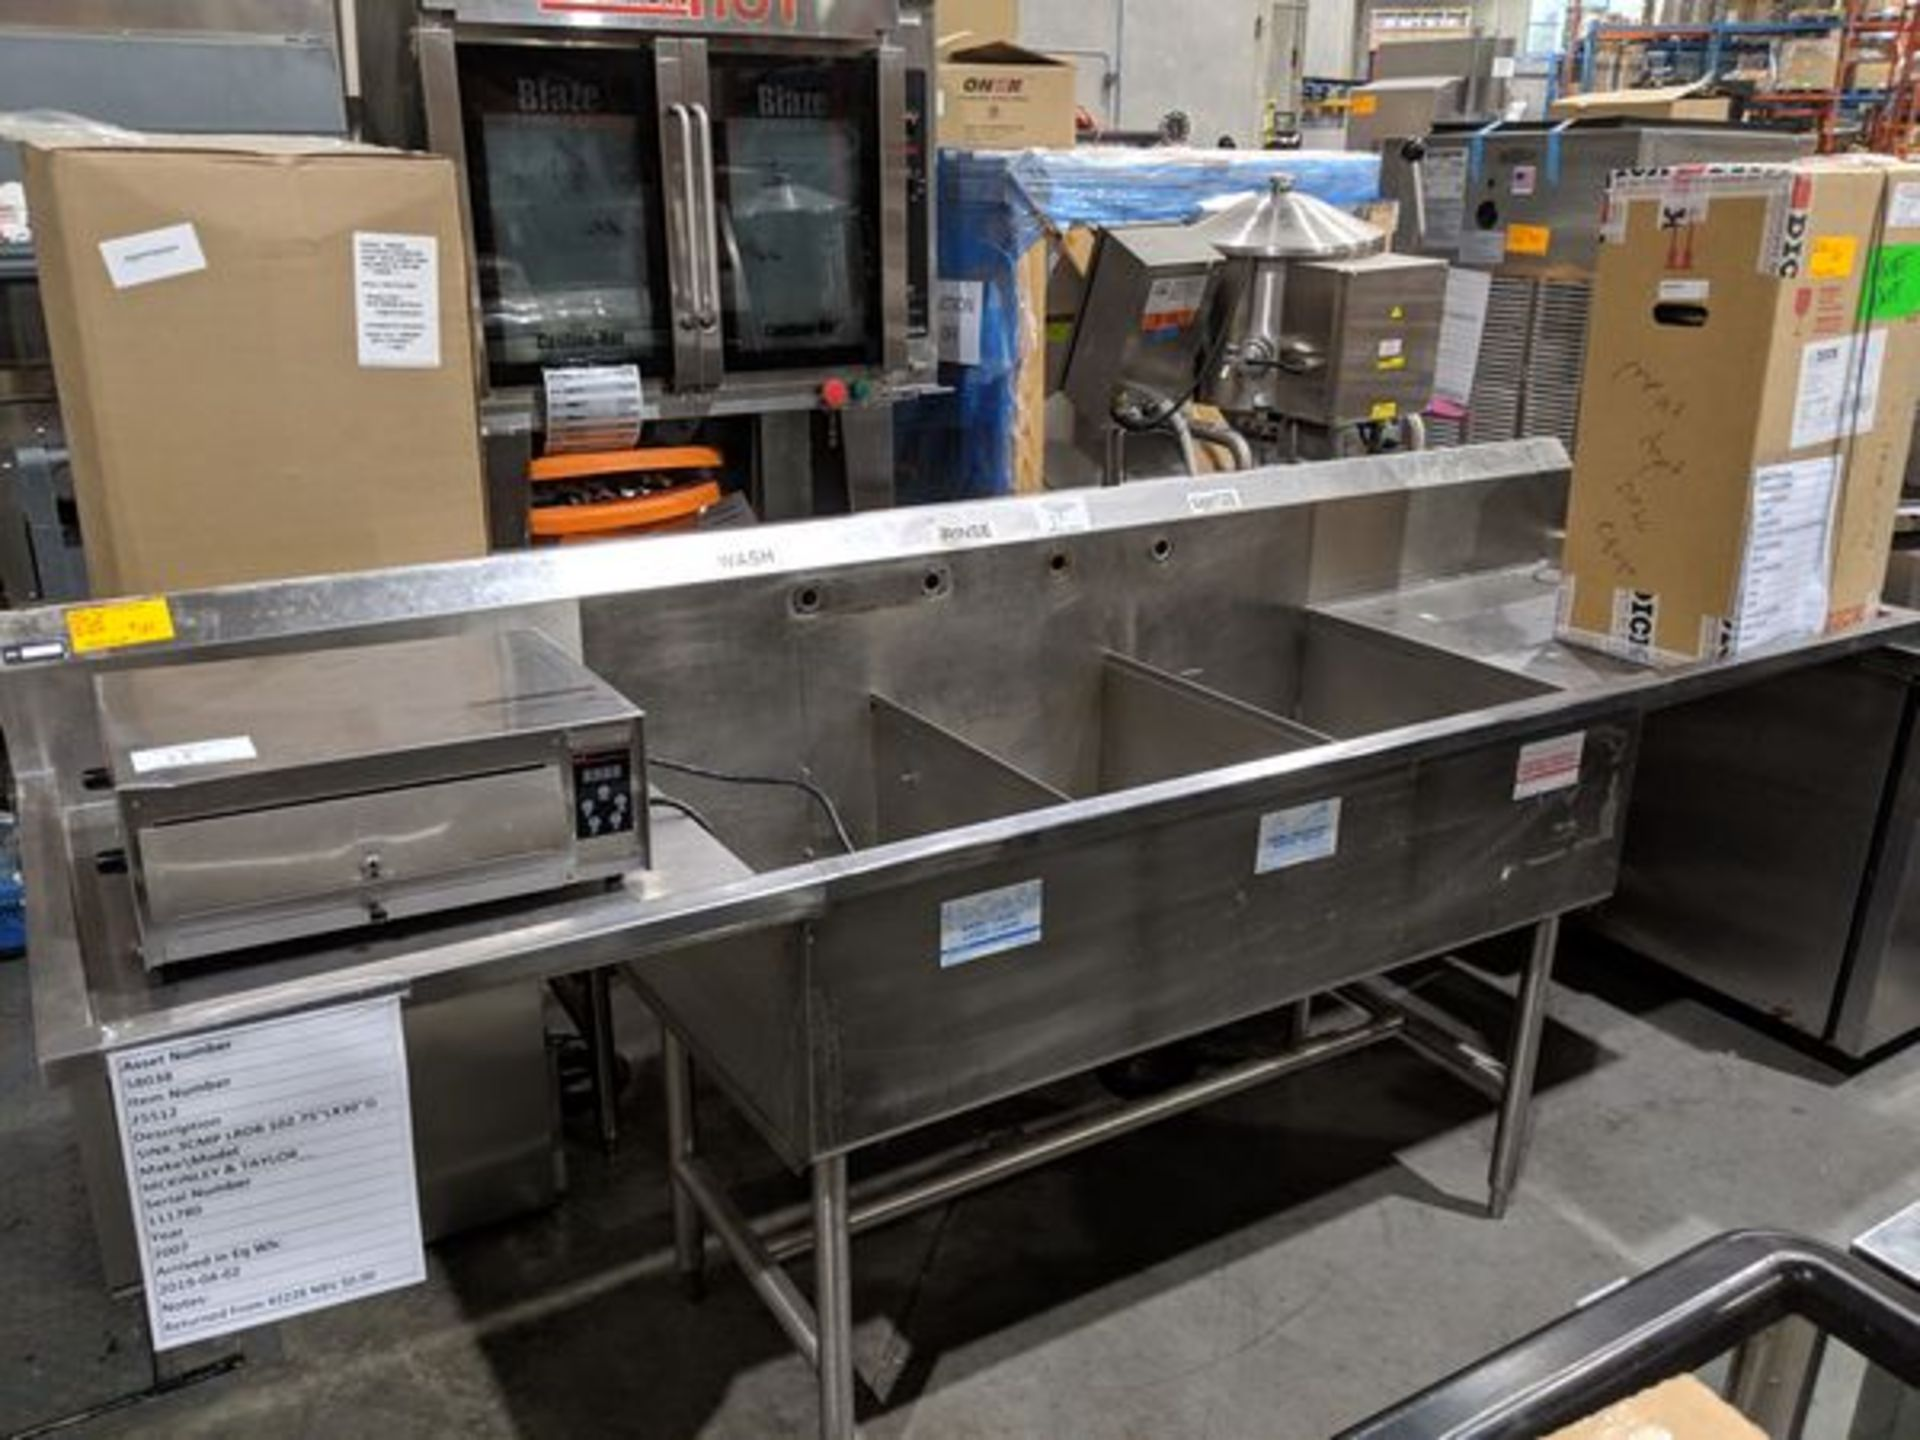 Lot 37 - 3 Compartment Stainless Steel Sink with 2 Run-offs - Custom Built - Approx Cost New $3400.00